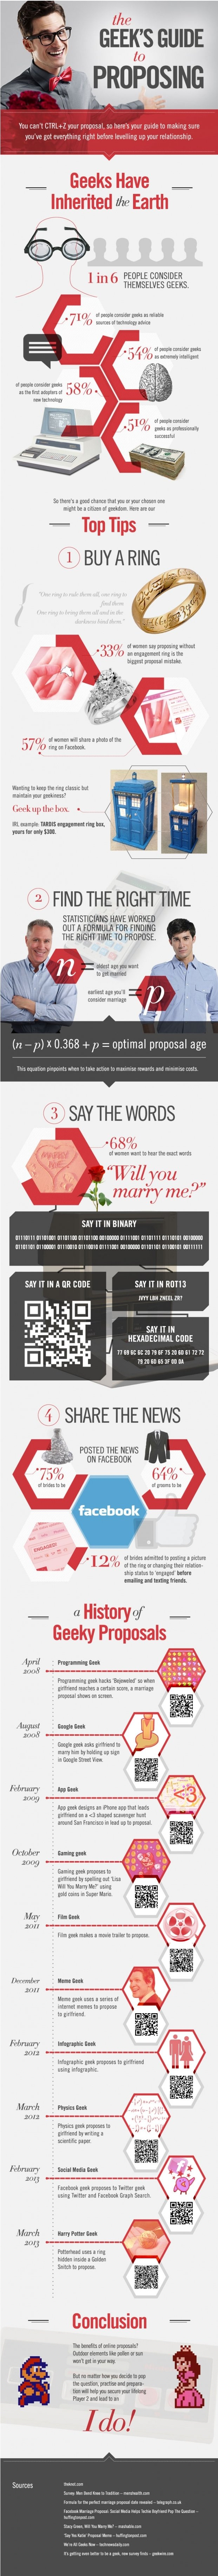 geek-guide-wedding